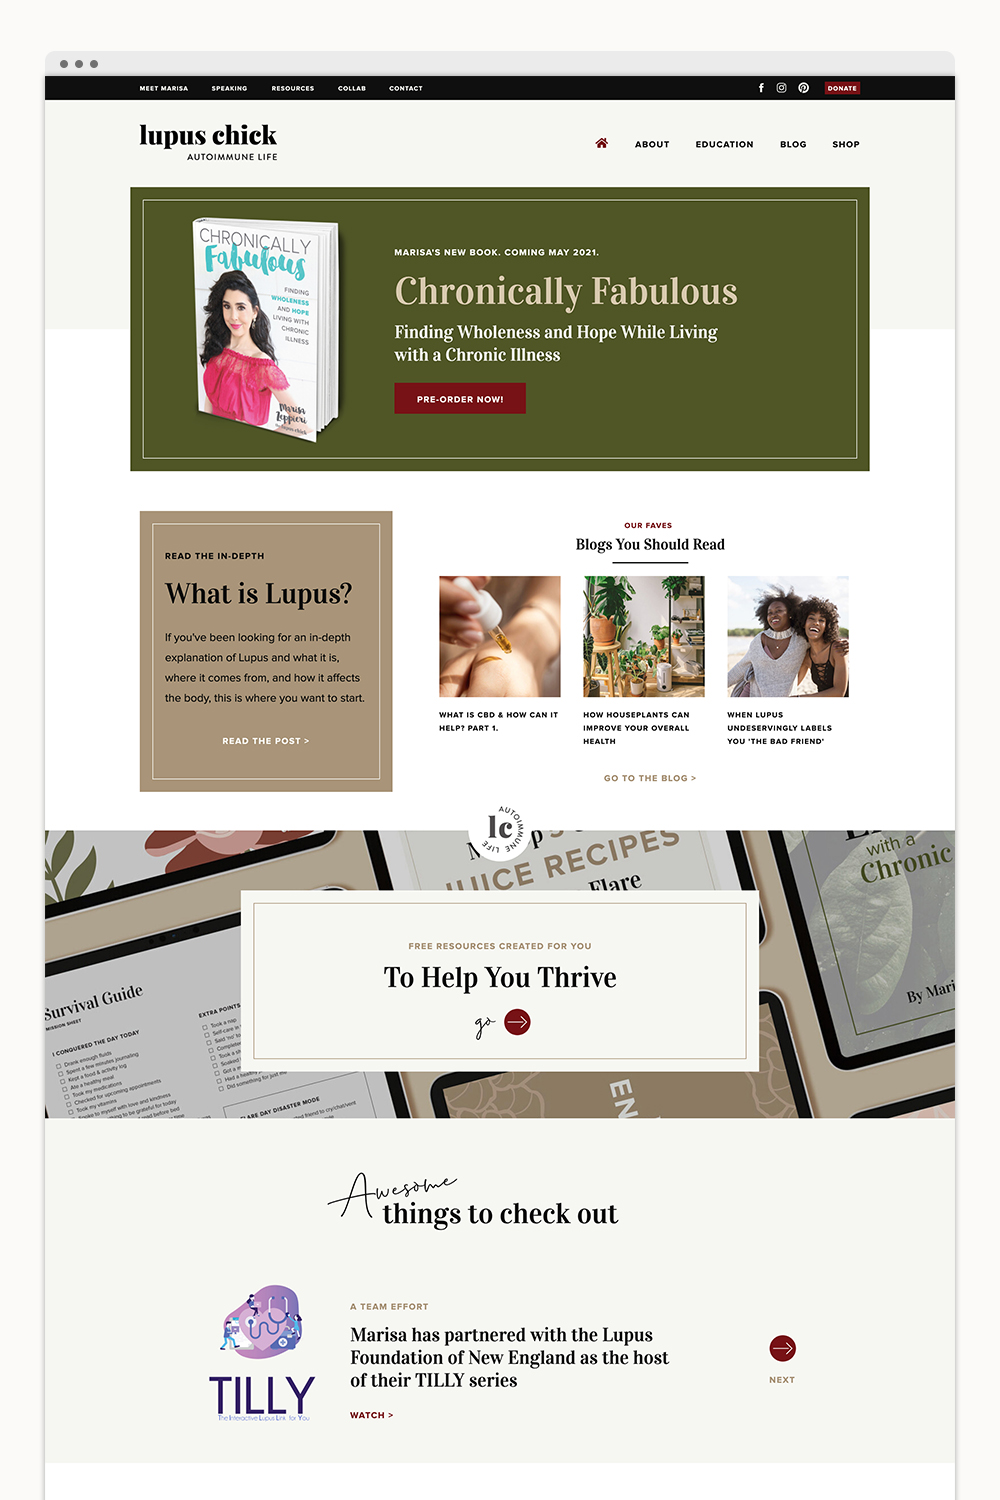 Custom Branding + Showit Website Design for Lupus Chick